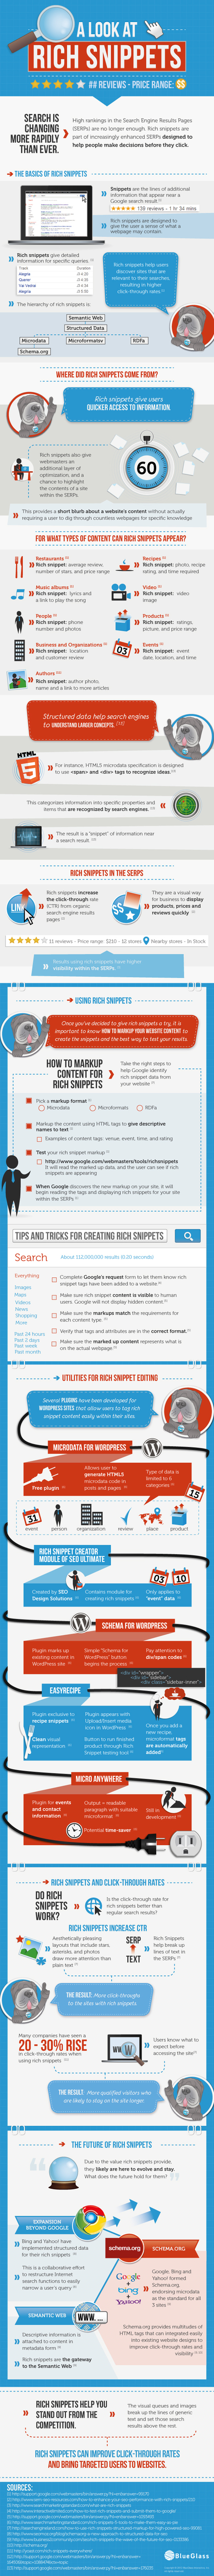 Una guida visuale per i Rich Snippets | Stellissimo SEO | Scoop.it